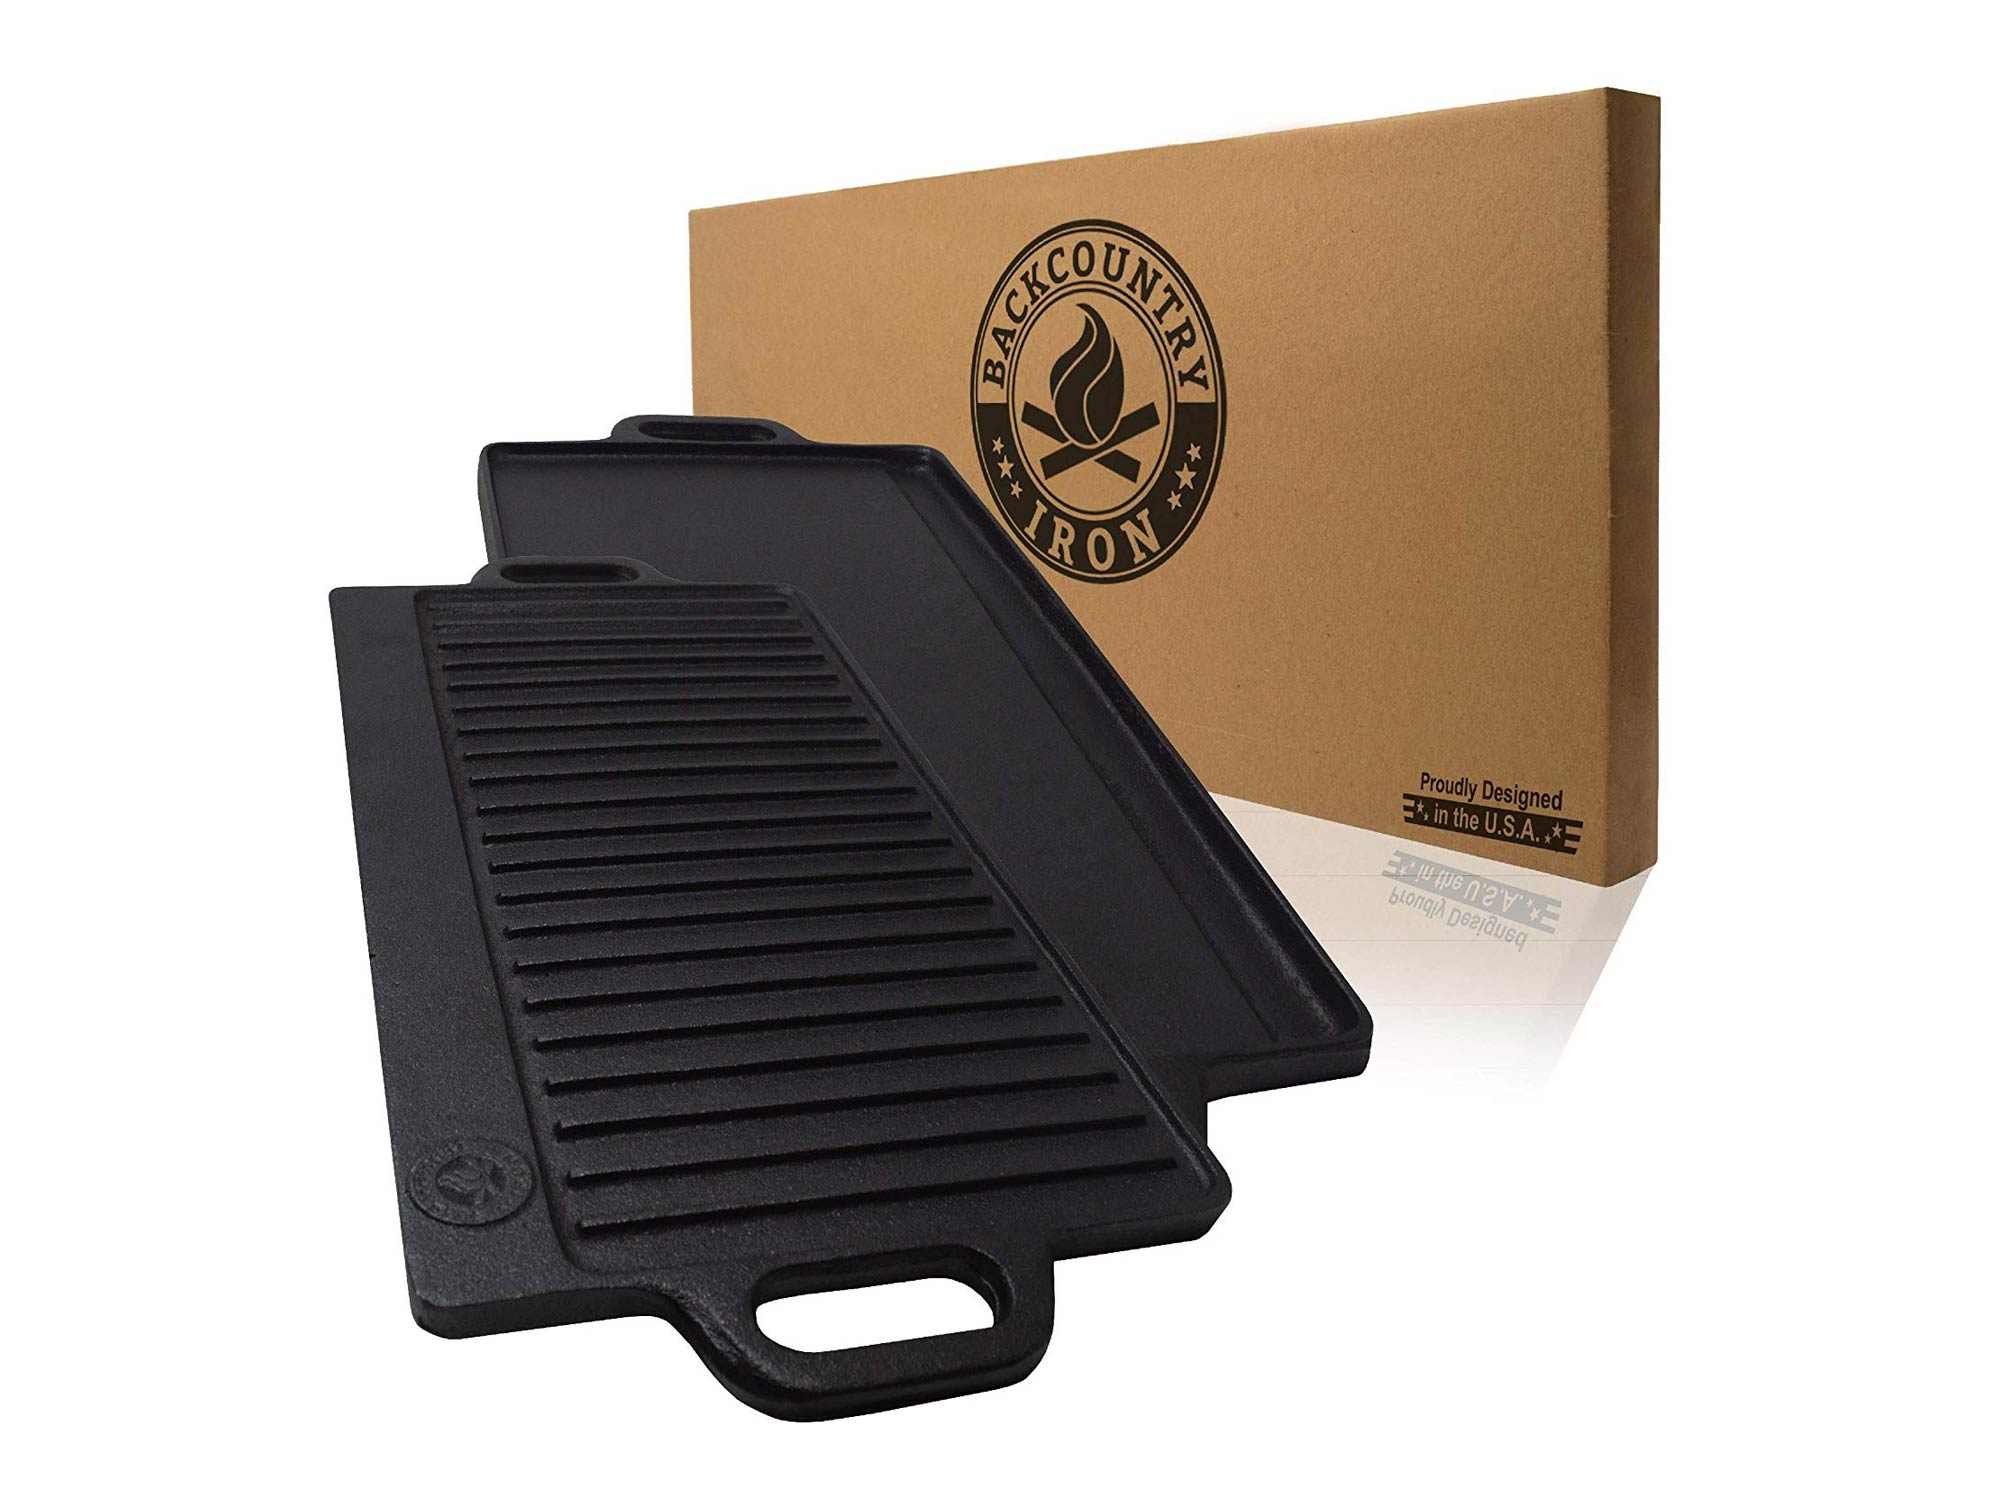 Cast iron grill on one side and a griddle on the other